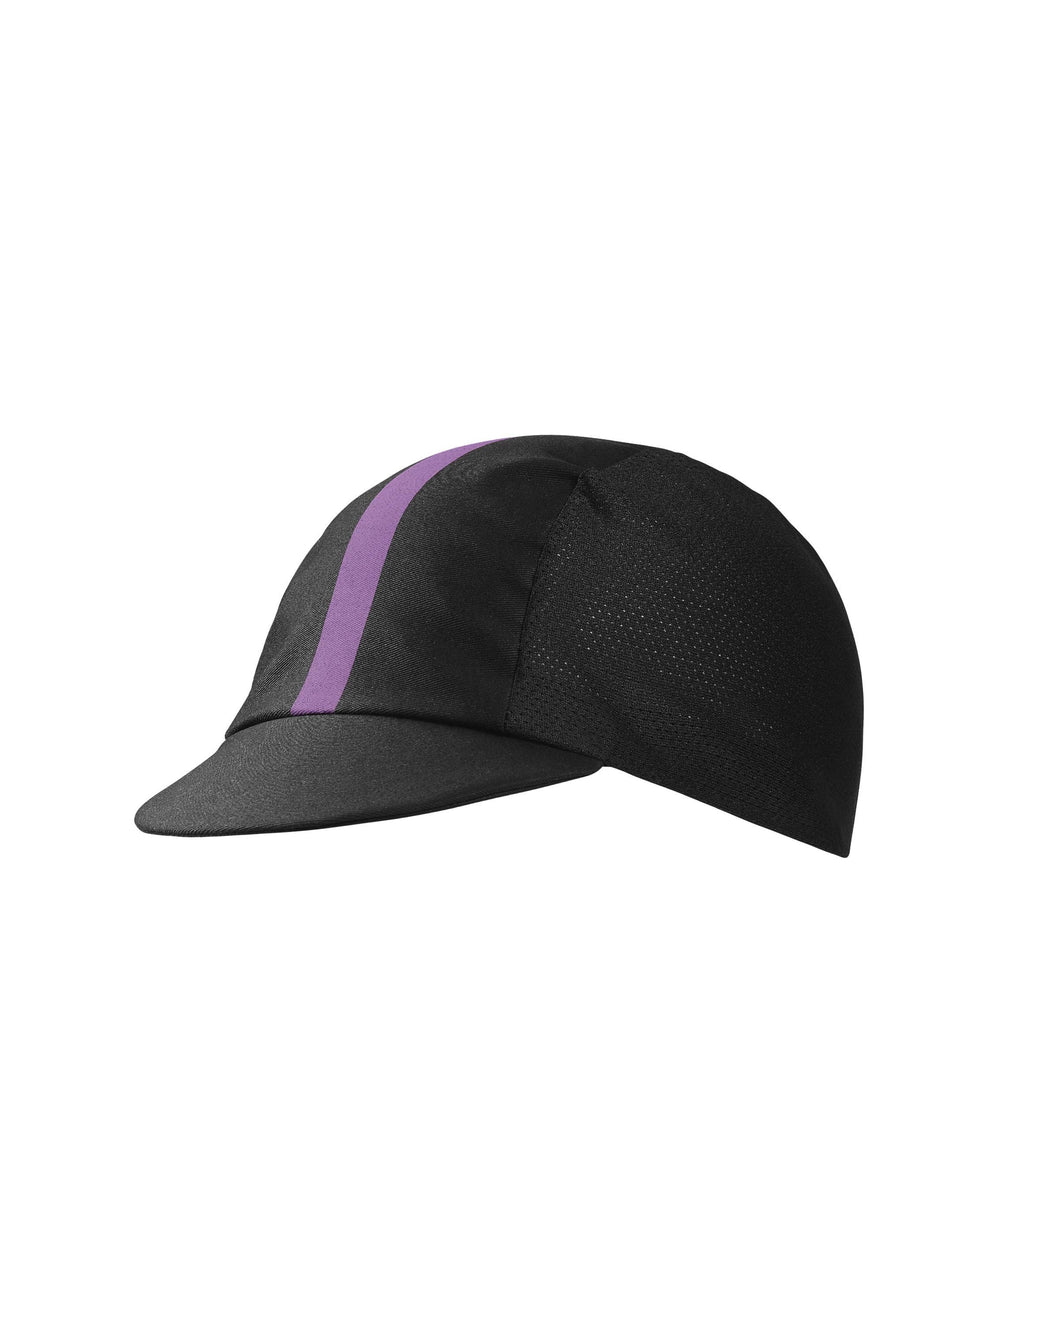 Assos Dyora RS Cap, 2020 - Cycle Closet